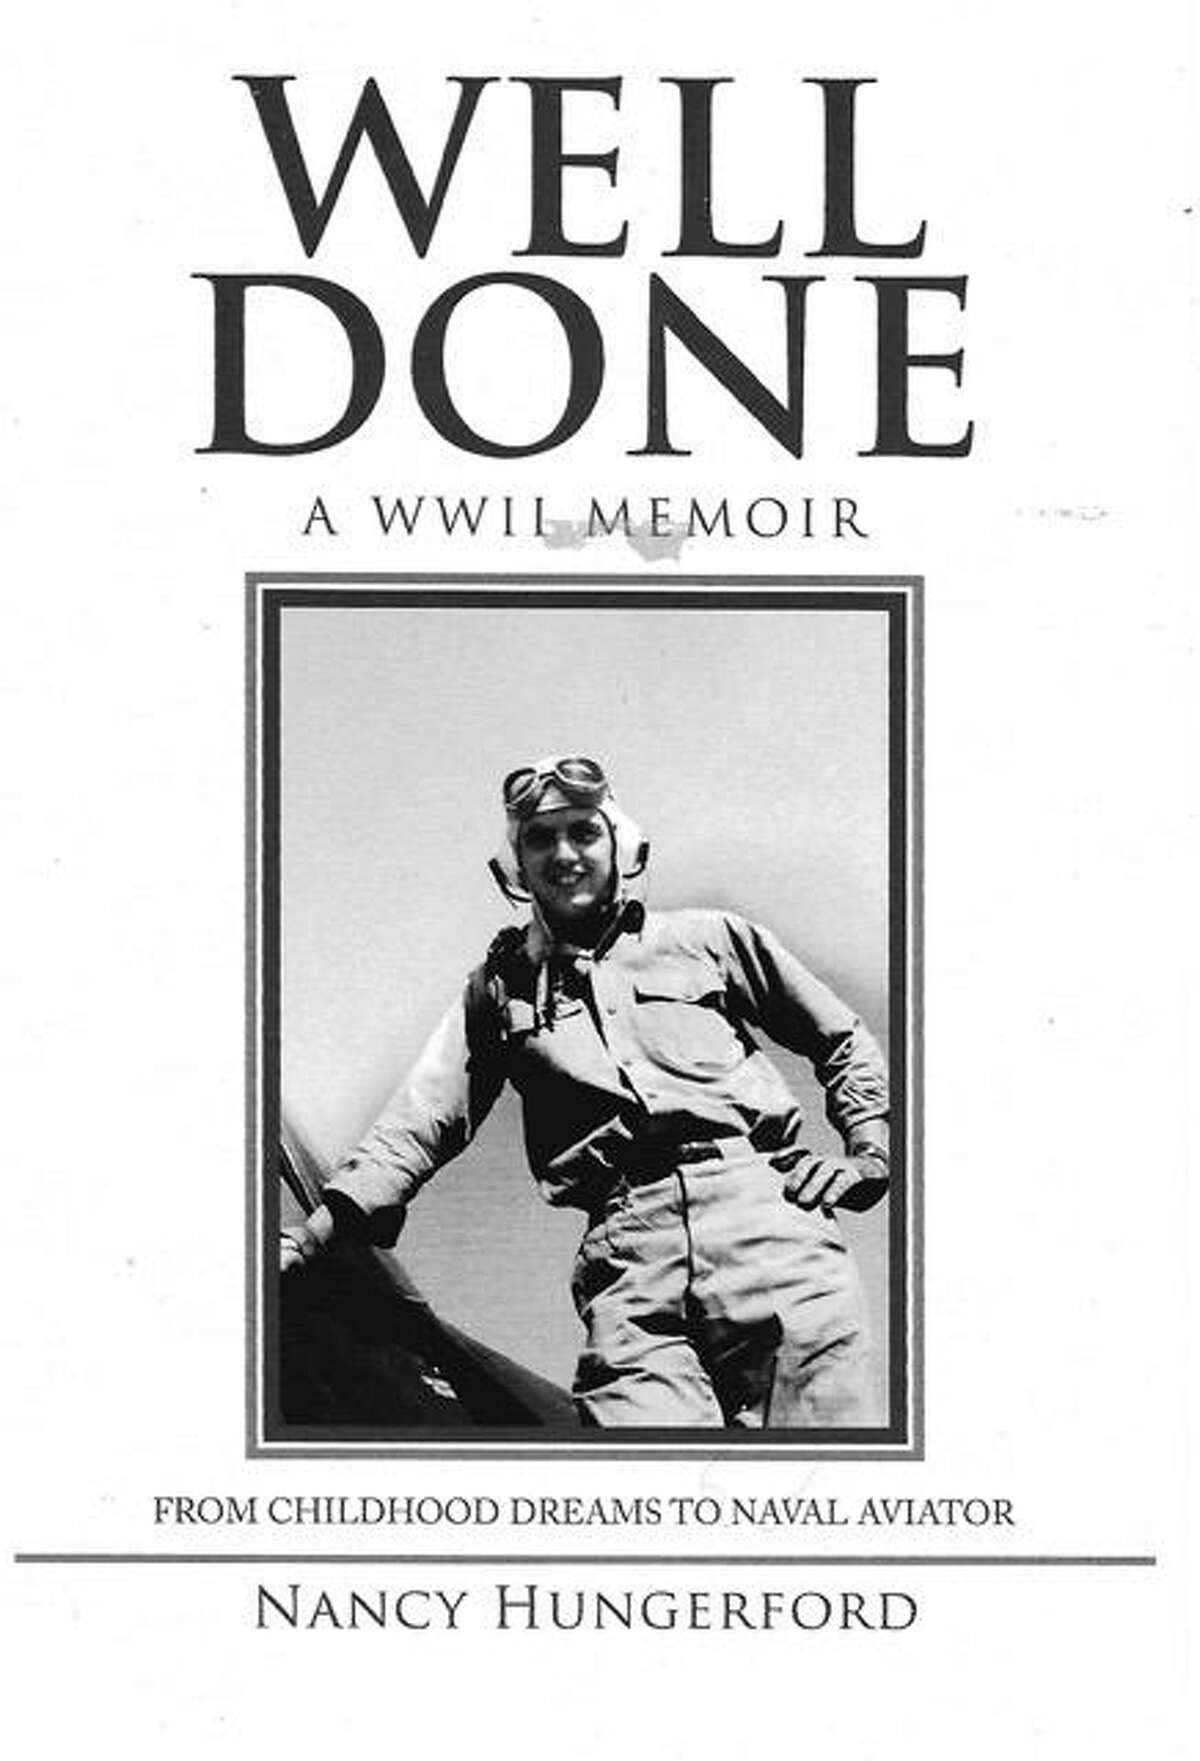 """Nancy Hungerford's book. """"Well Done, A WW II Memoir"""" captures her late husband's experiences during the war."""